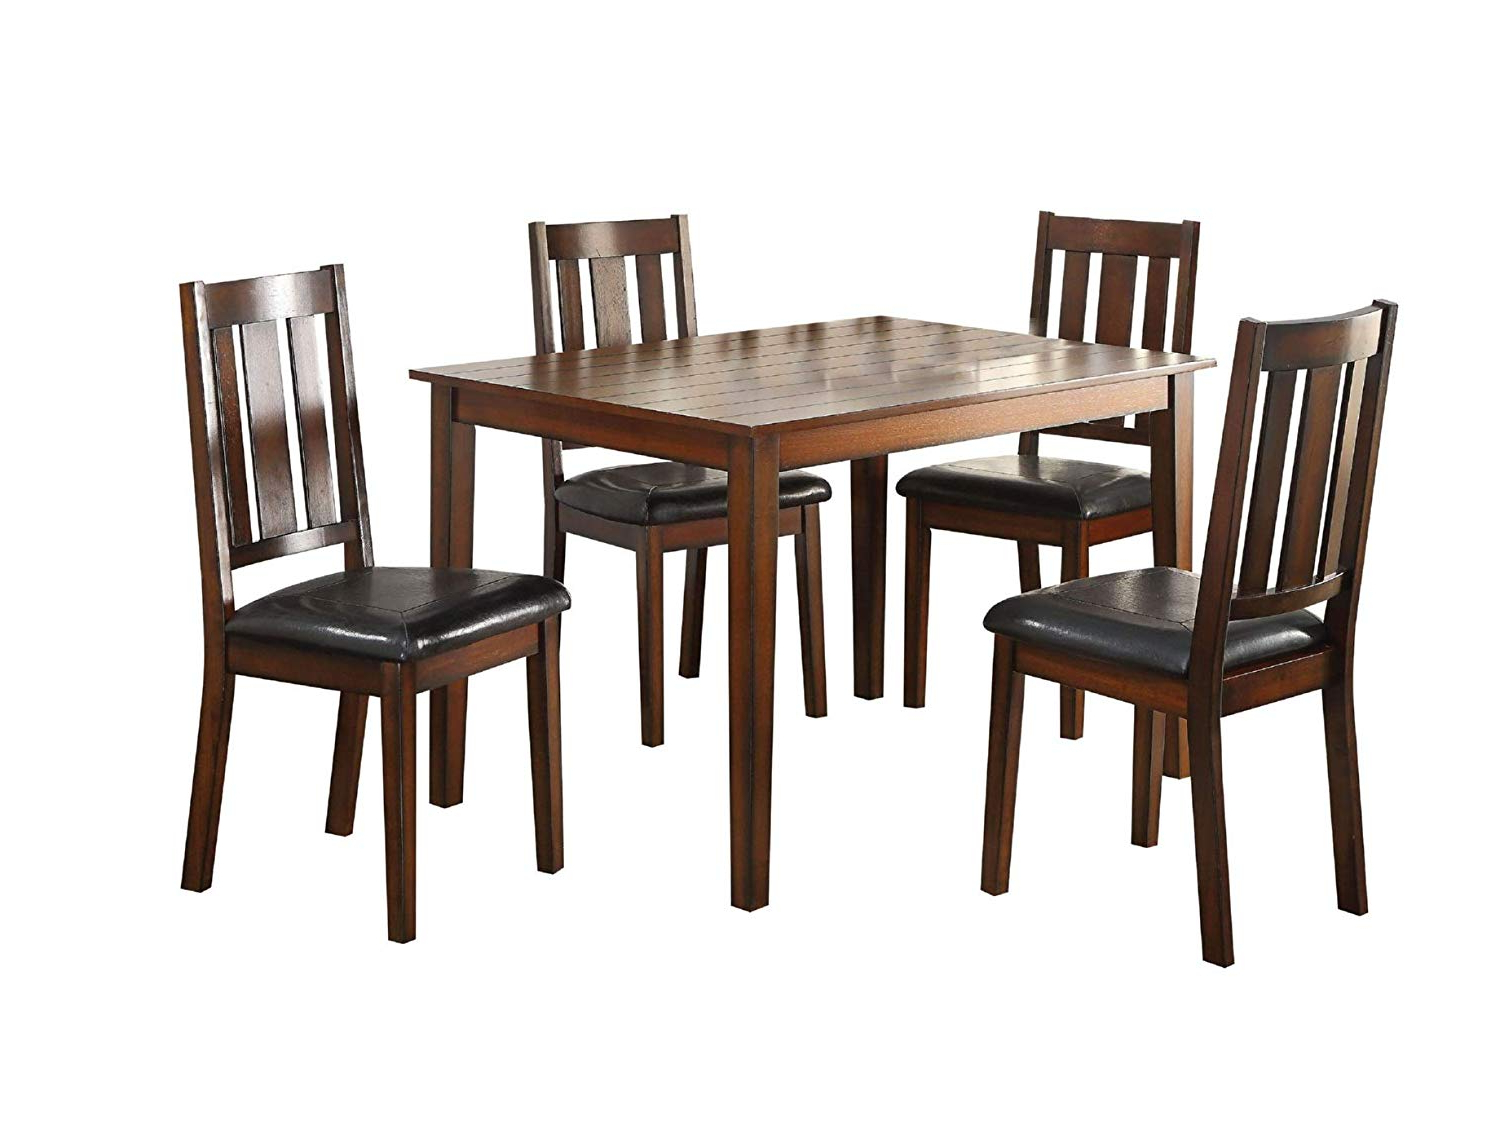 Best And Newest Transitional 4 Seating Square Casual Dining Tables Inside Amazon – Major Q 5Pc Pack Transitional Style Casual (View 2 of 25)